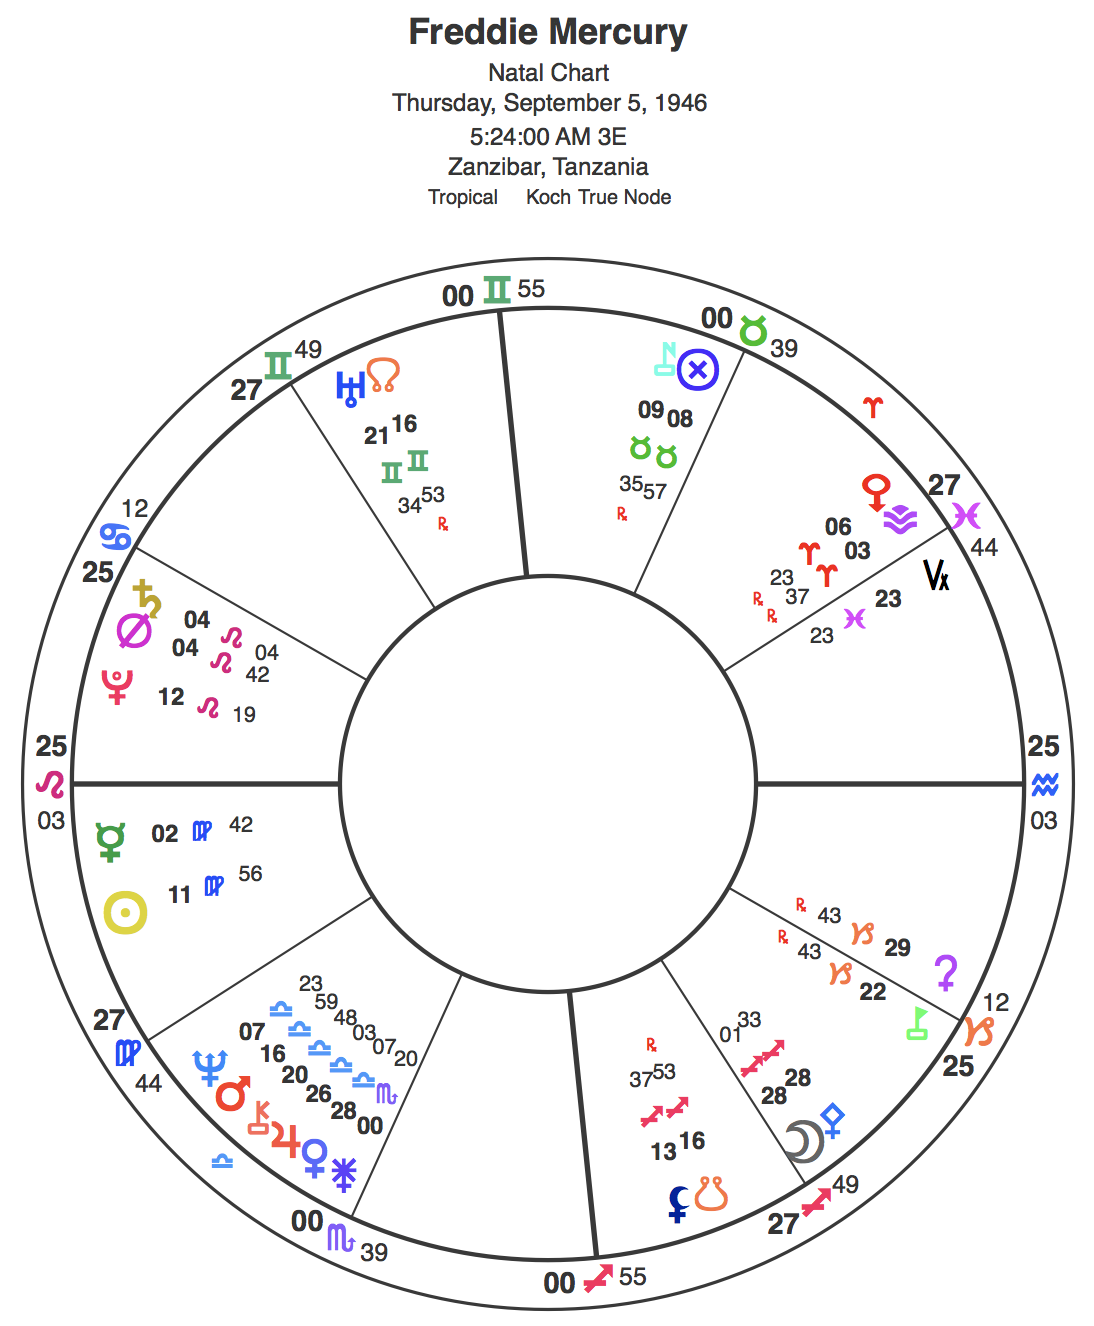 Leo rising chart for Freddie. Click image for larger version.